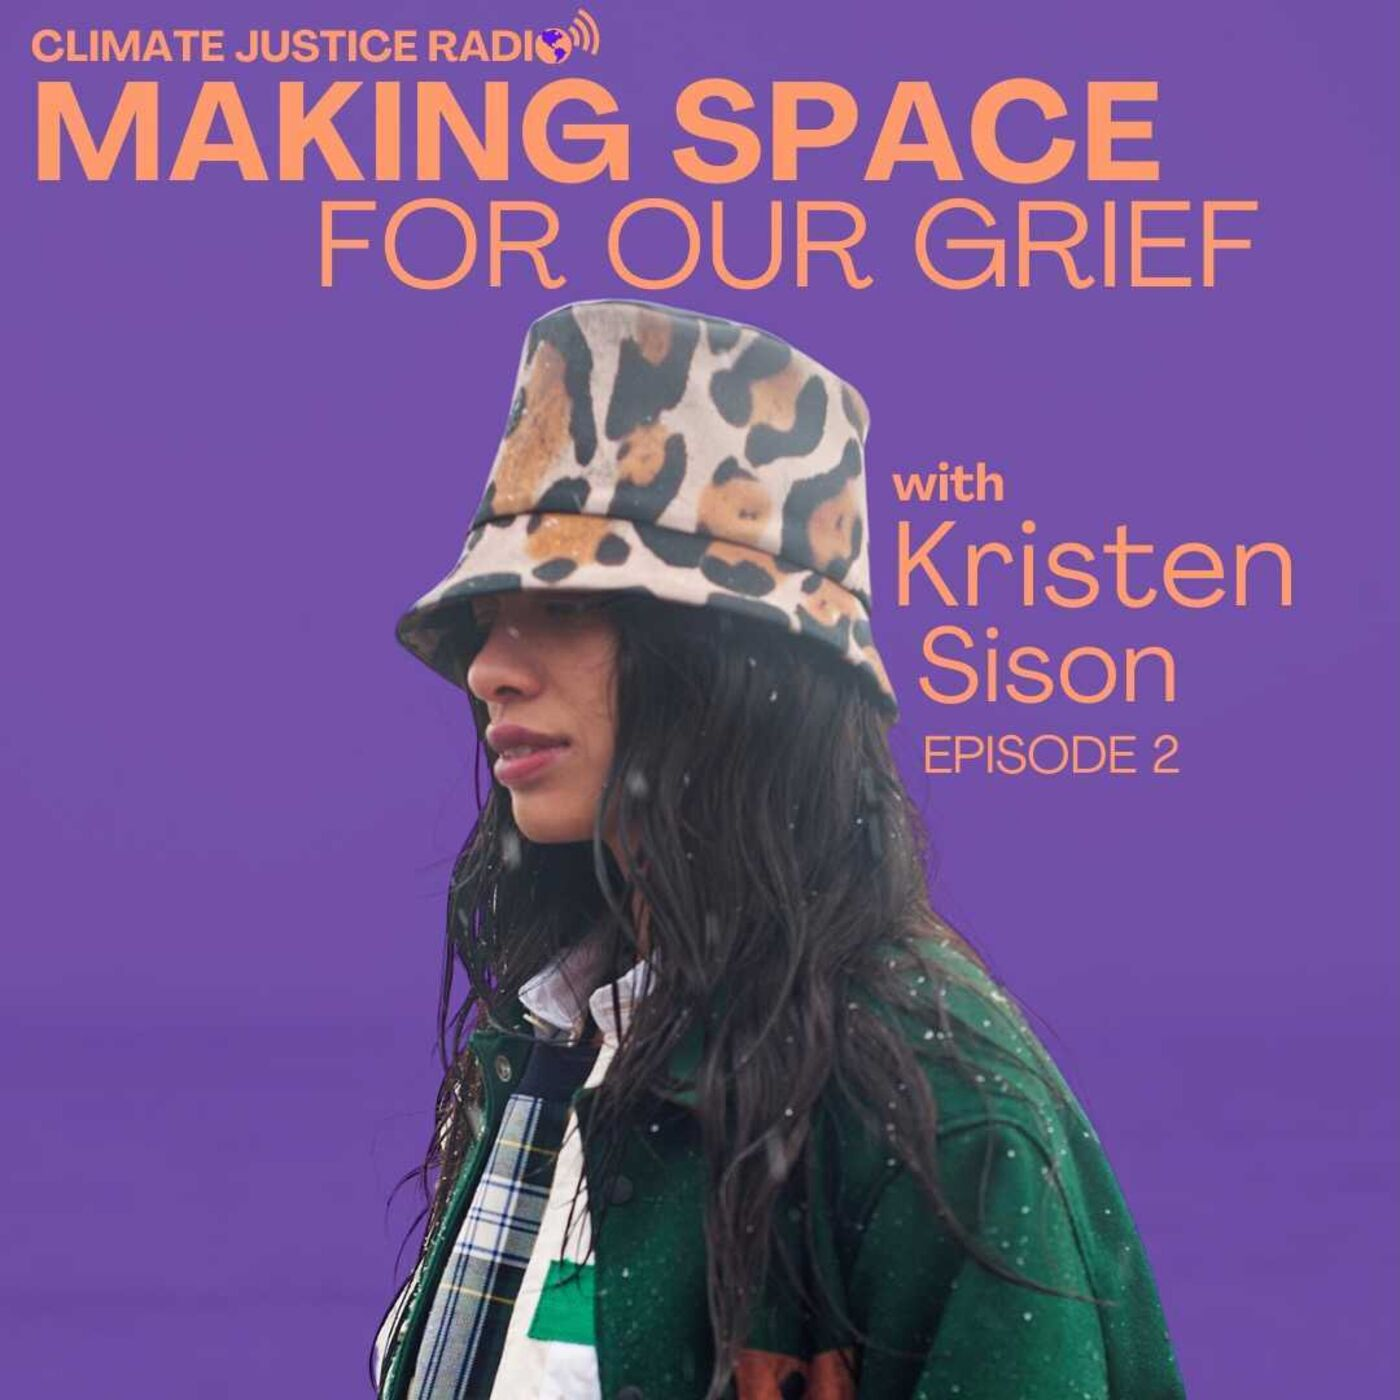 Episode 2 - Making Space For Our Grief with Kristen Sison